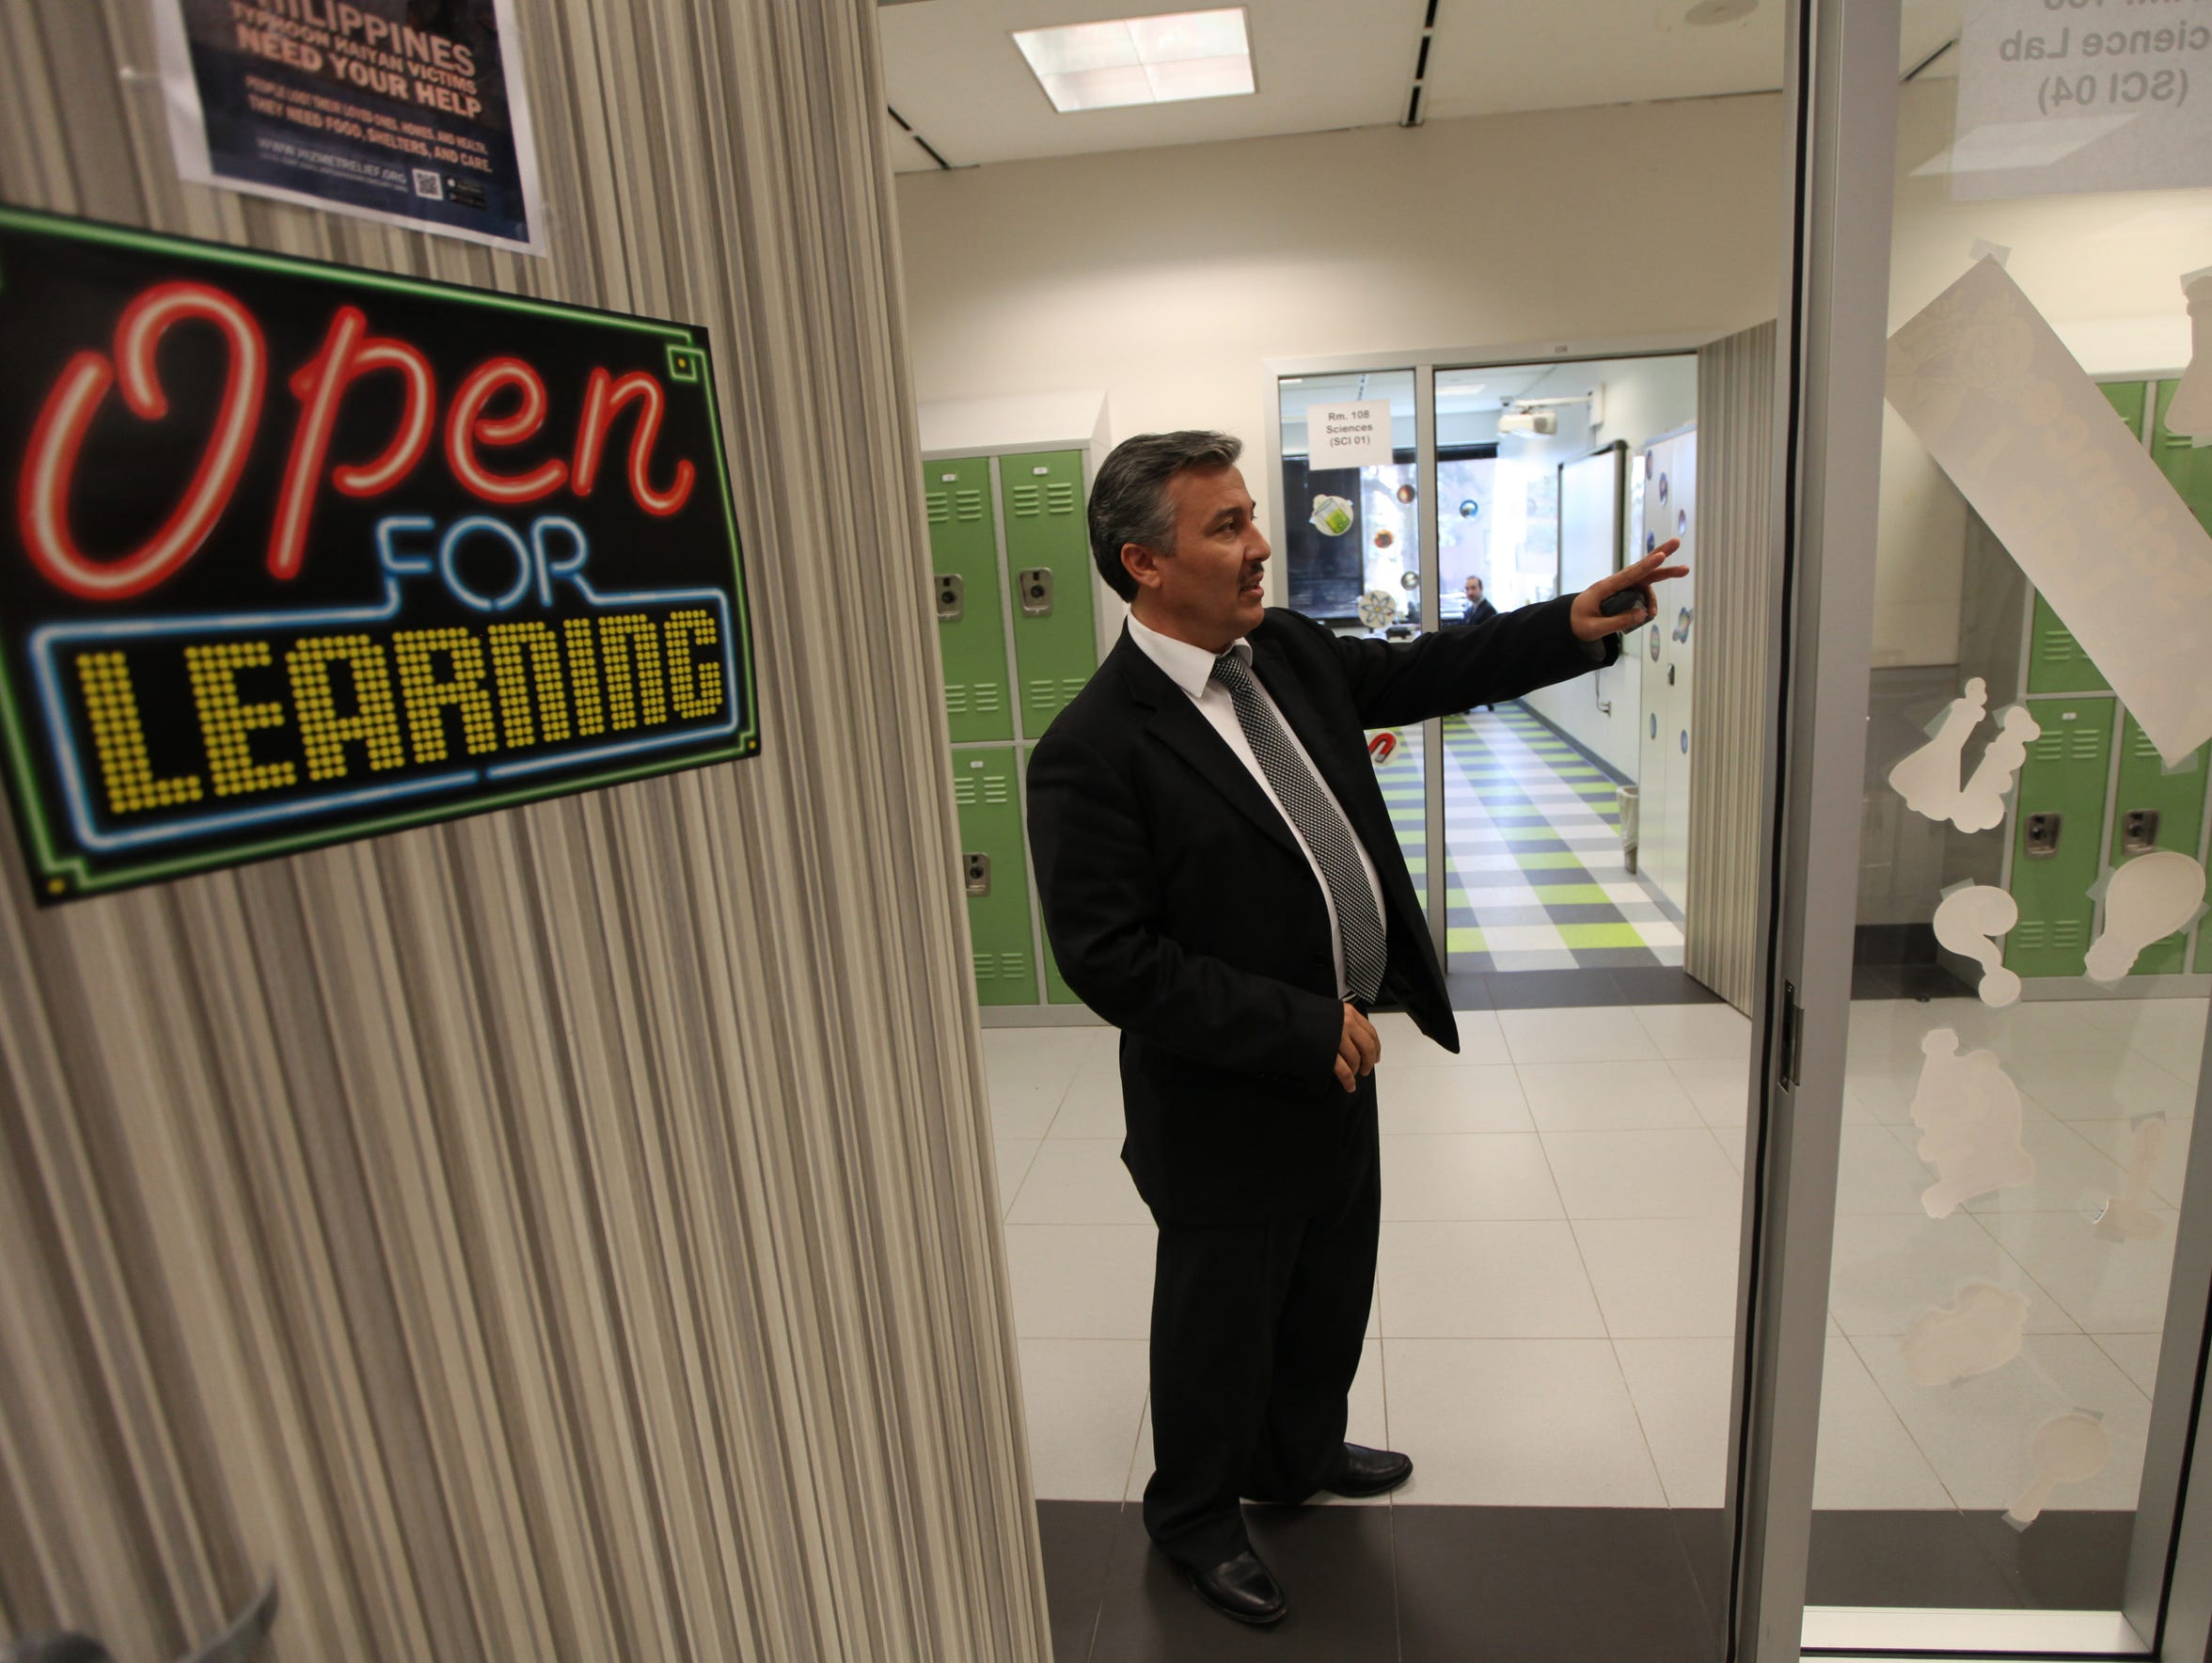 Former principal Sukan Alkin gives a tour of the location